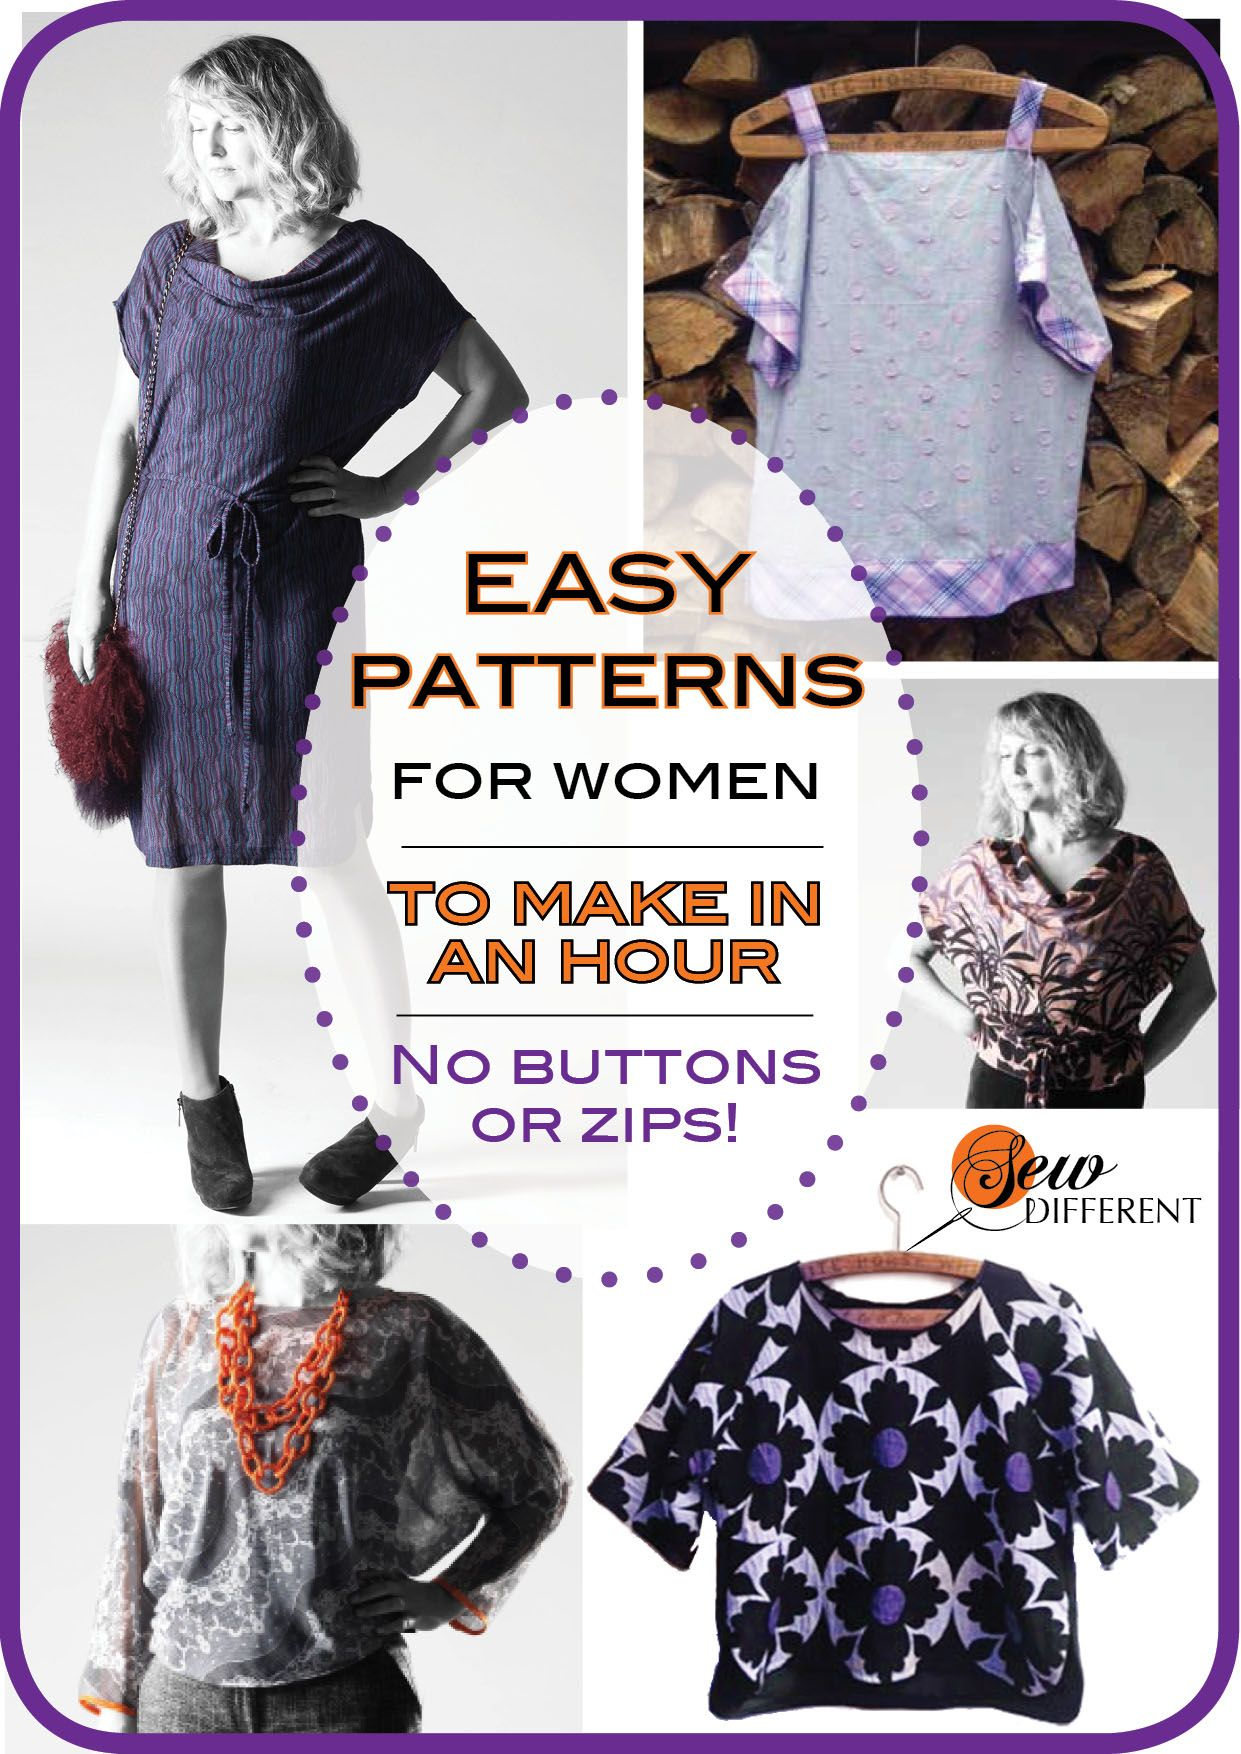 Easy FREE sewing patterns for womems. No zips or buttons, thank god ...